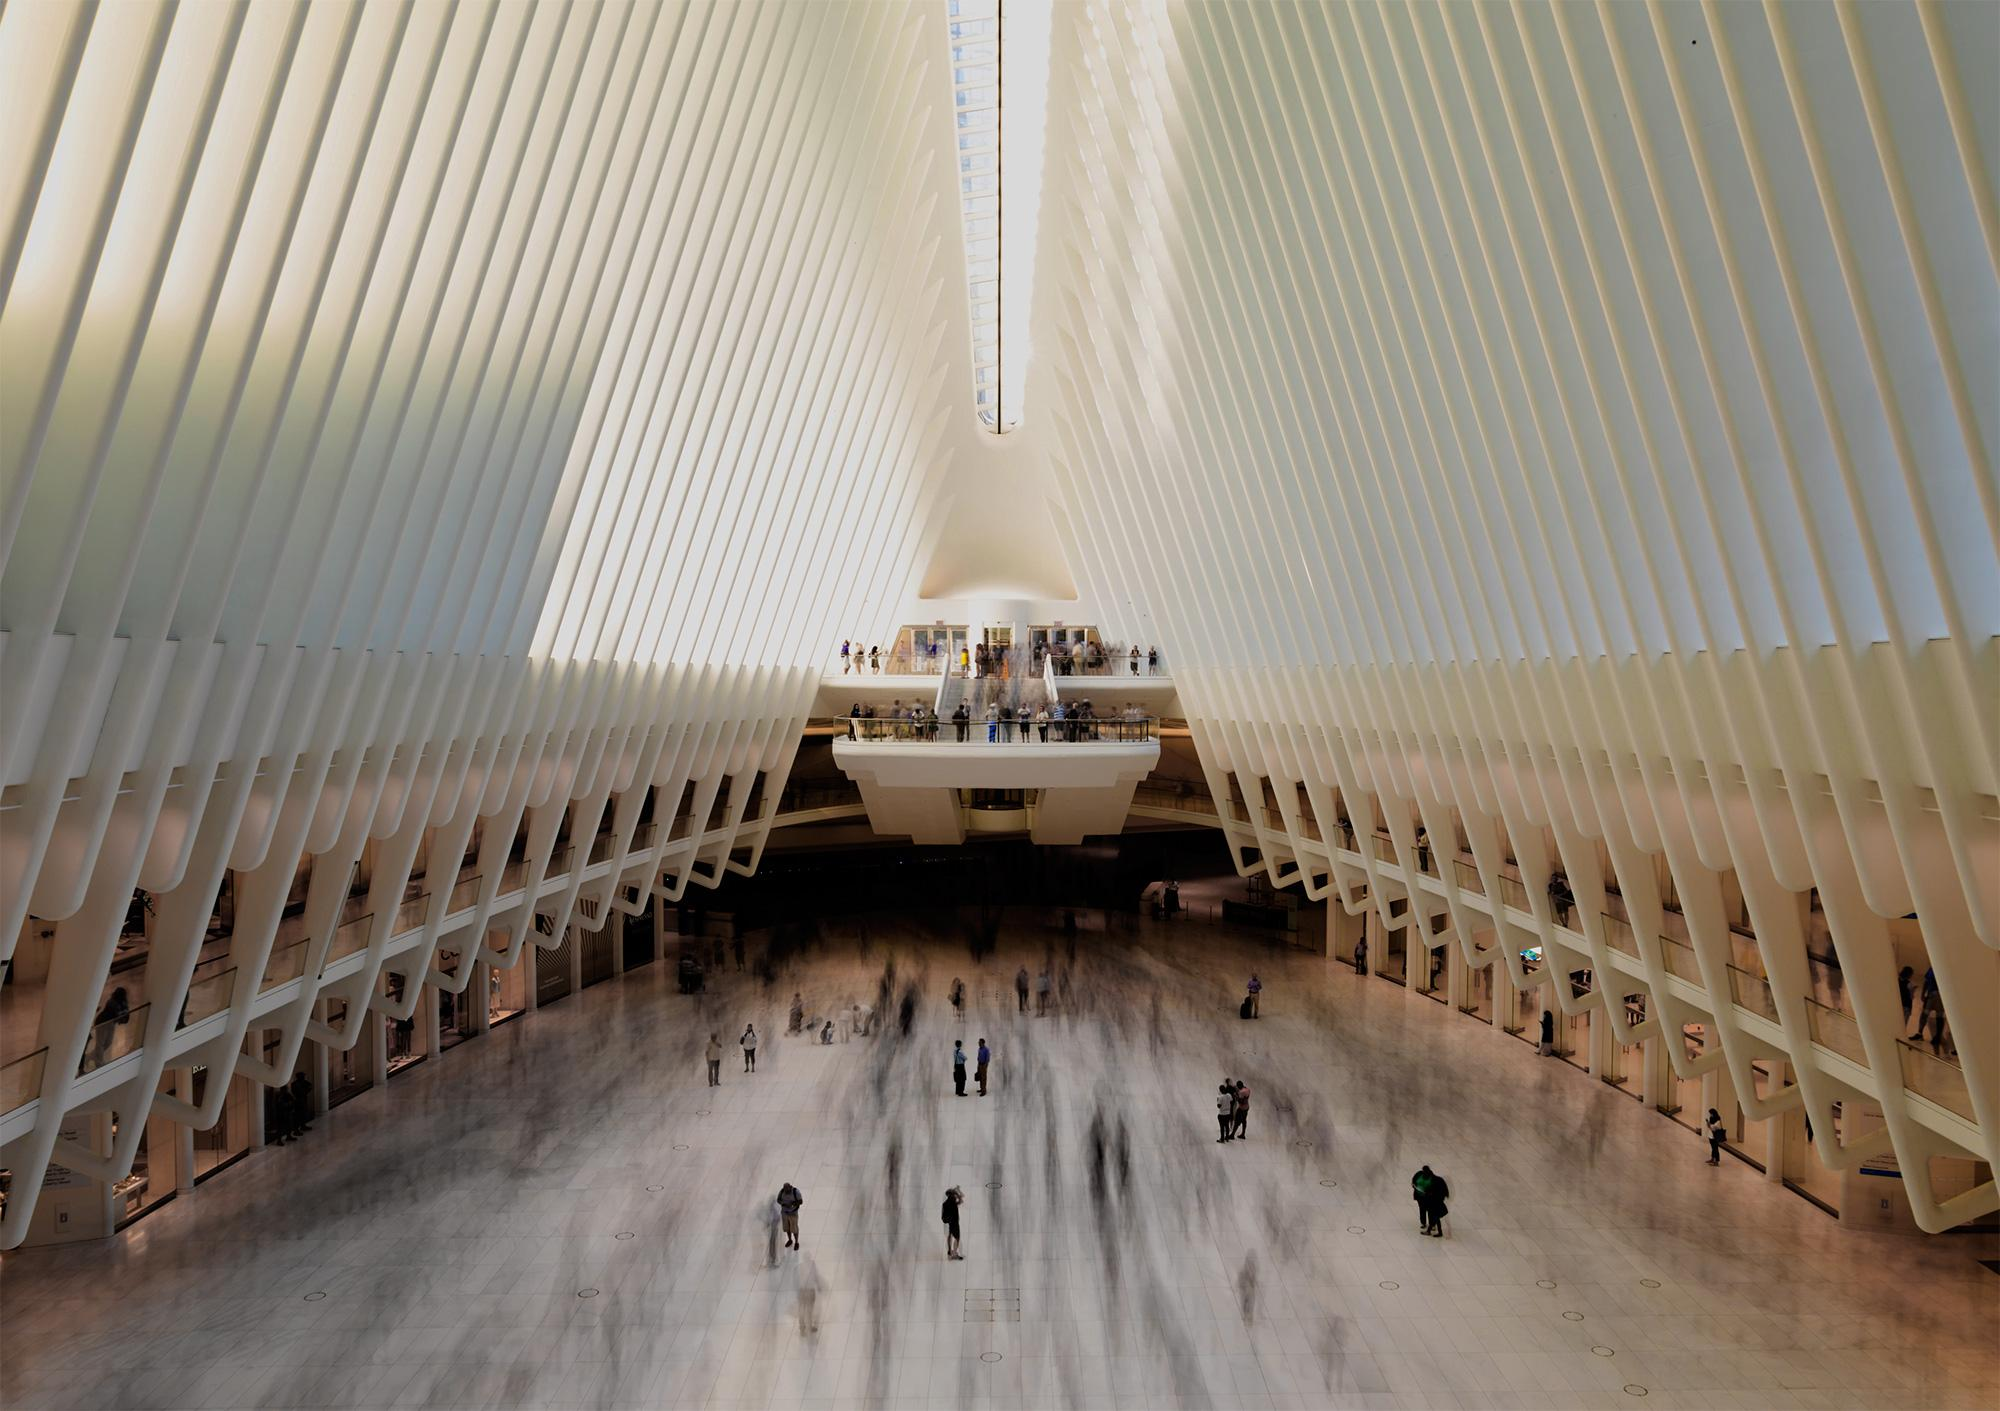 Oculus World Trade Center Transportation Hub